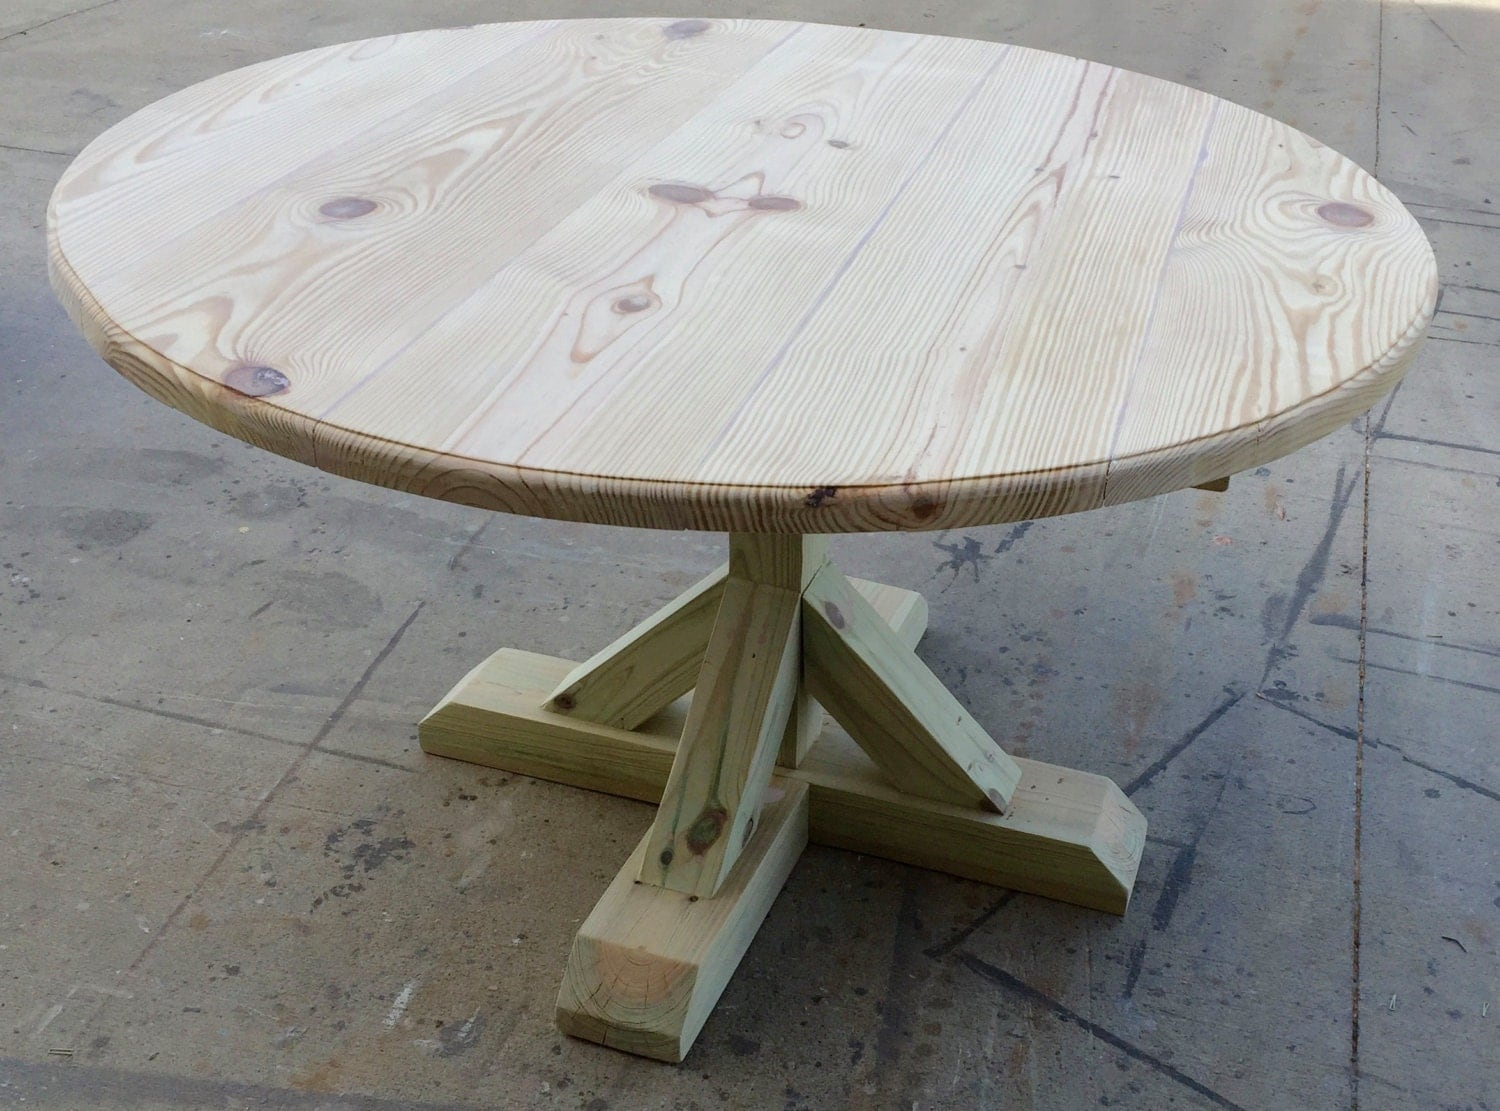 DIY Round Trestle Table By OnPointWoodDesign On Etsy